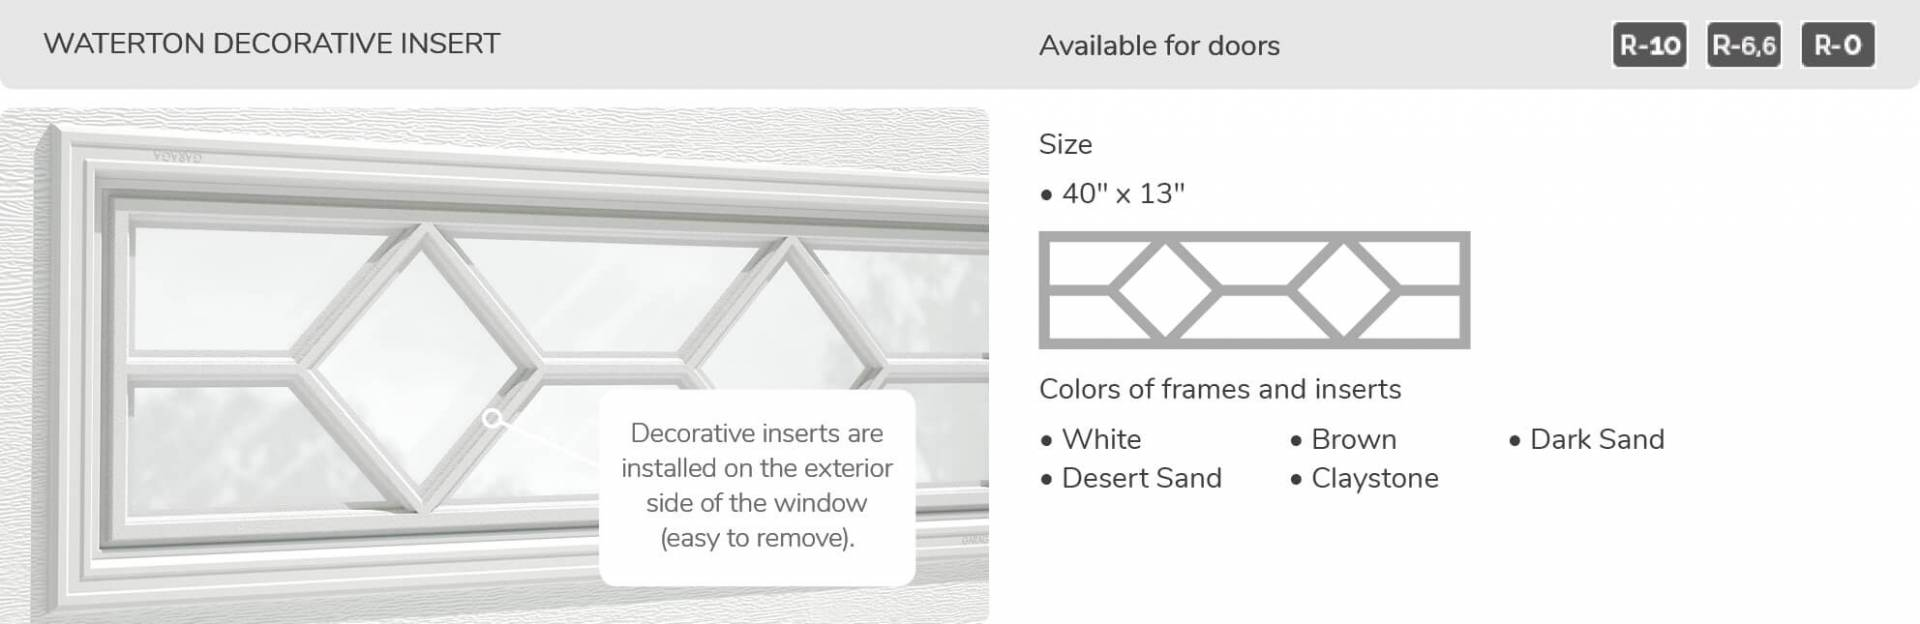 "Waterton Decorative Insert, 40"" x 13"", available for doors R-10, R-6.6, R-0"